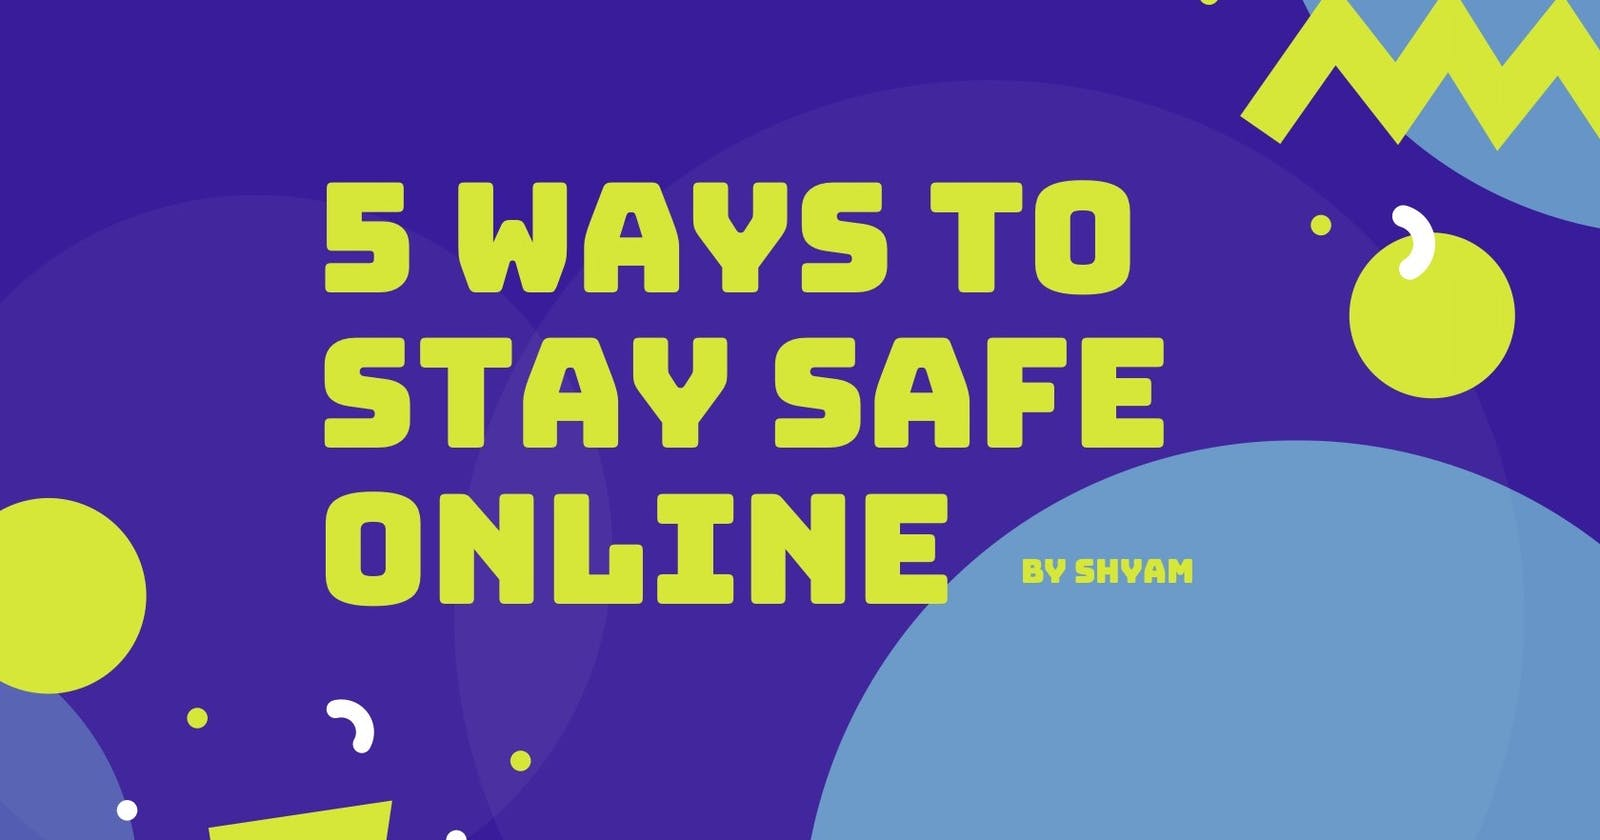 5 Ways to Stay Safe Online